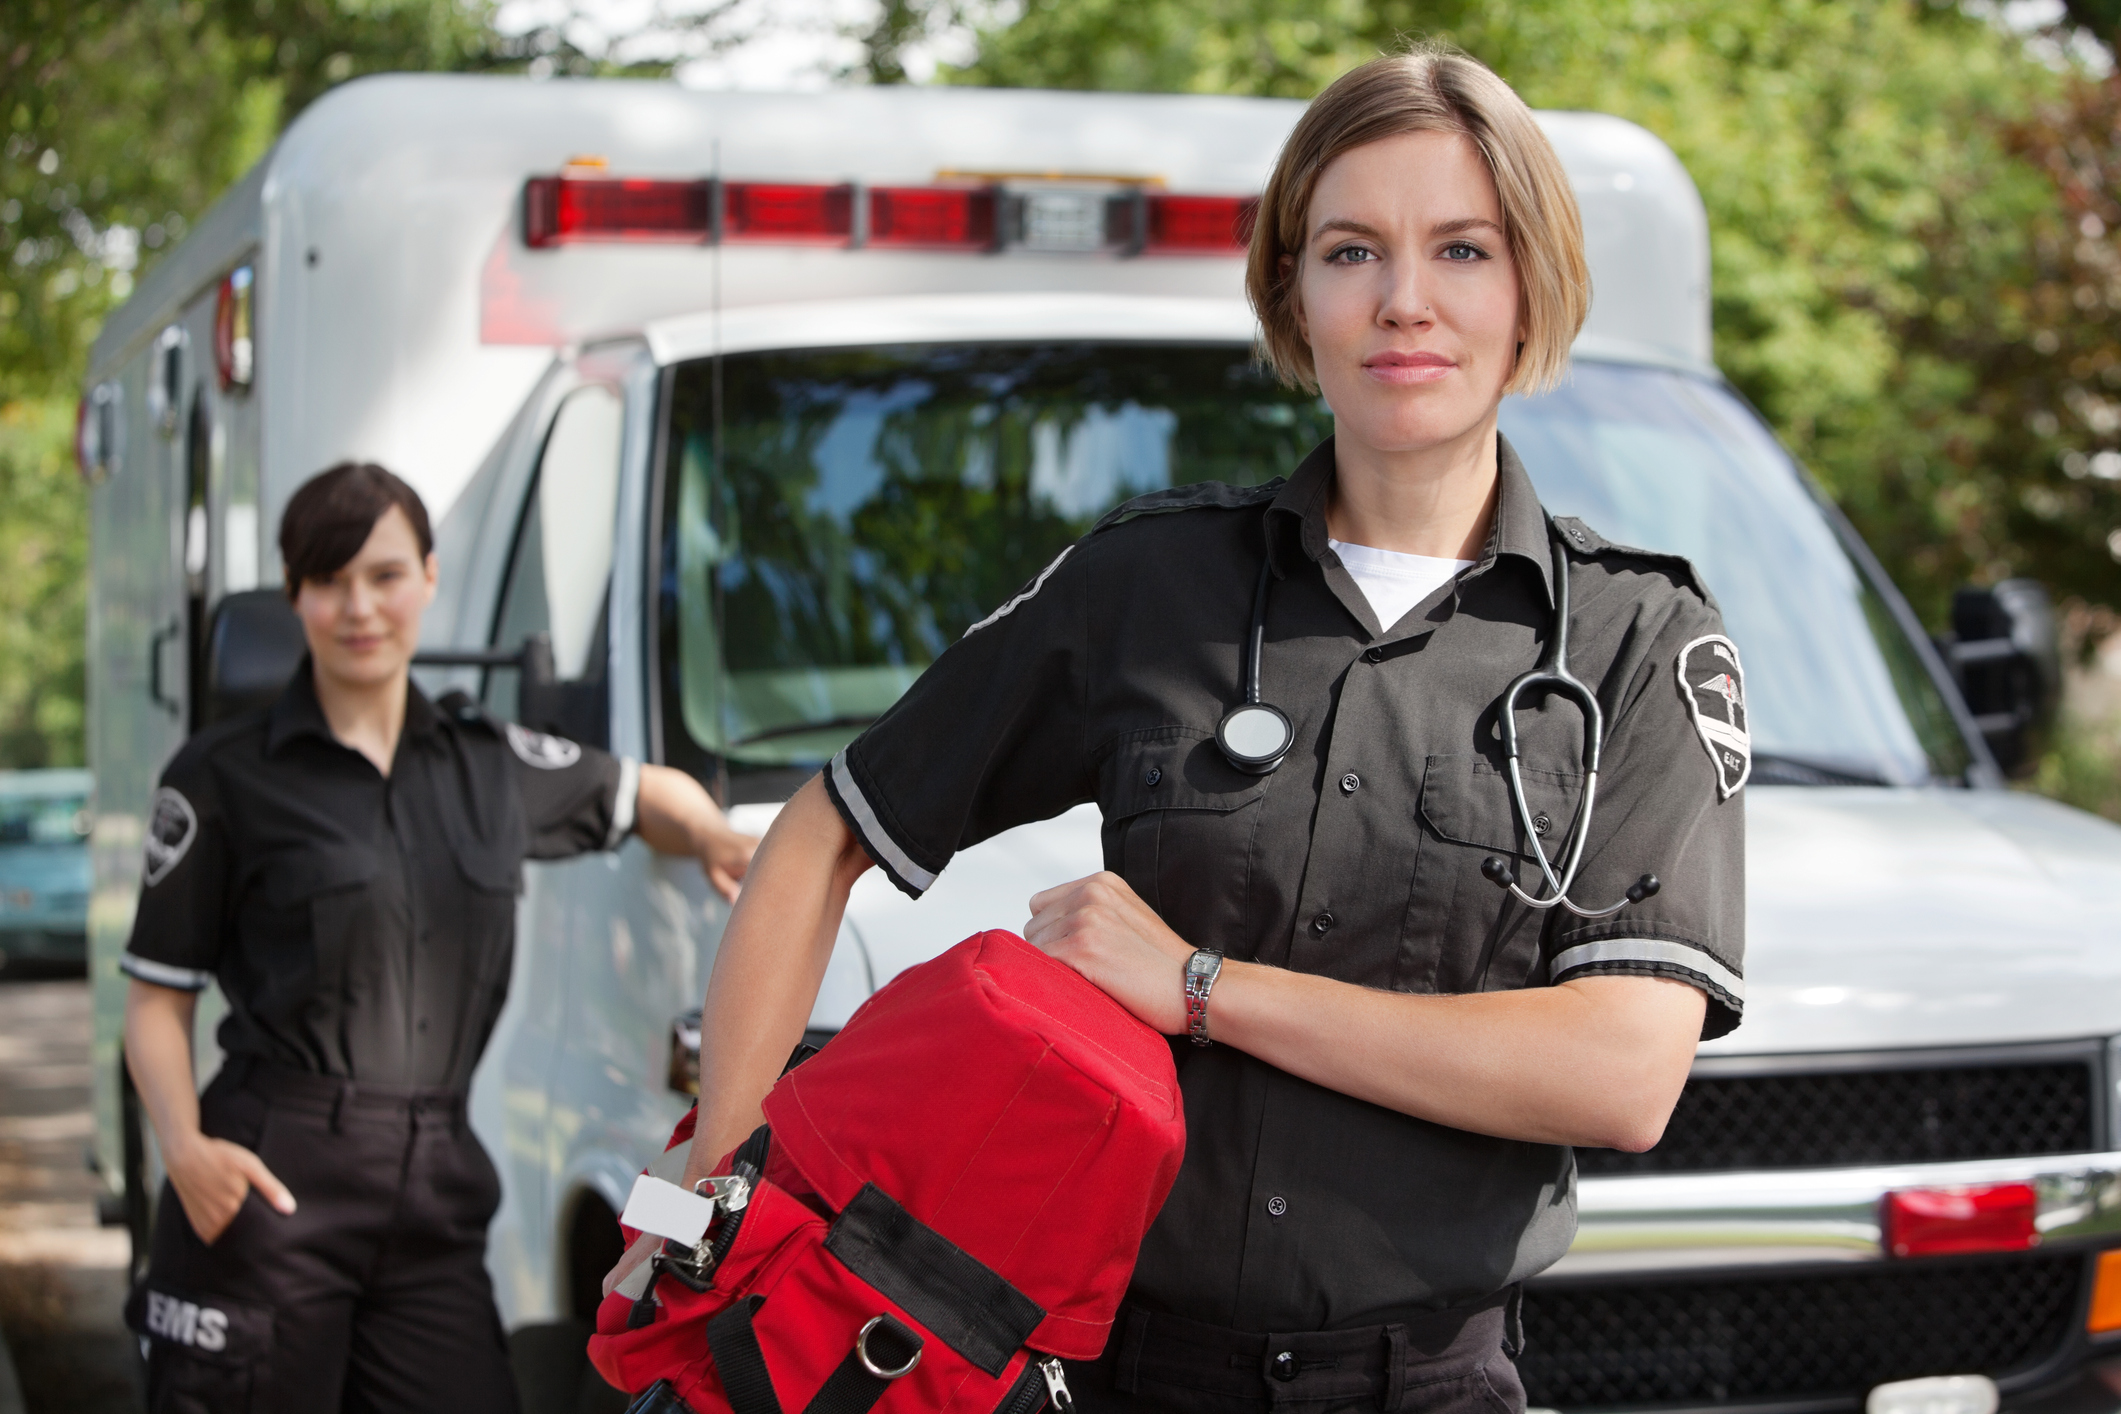 EMT worker with ambulance in the background